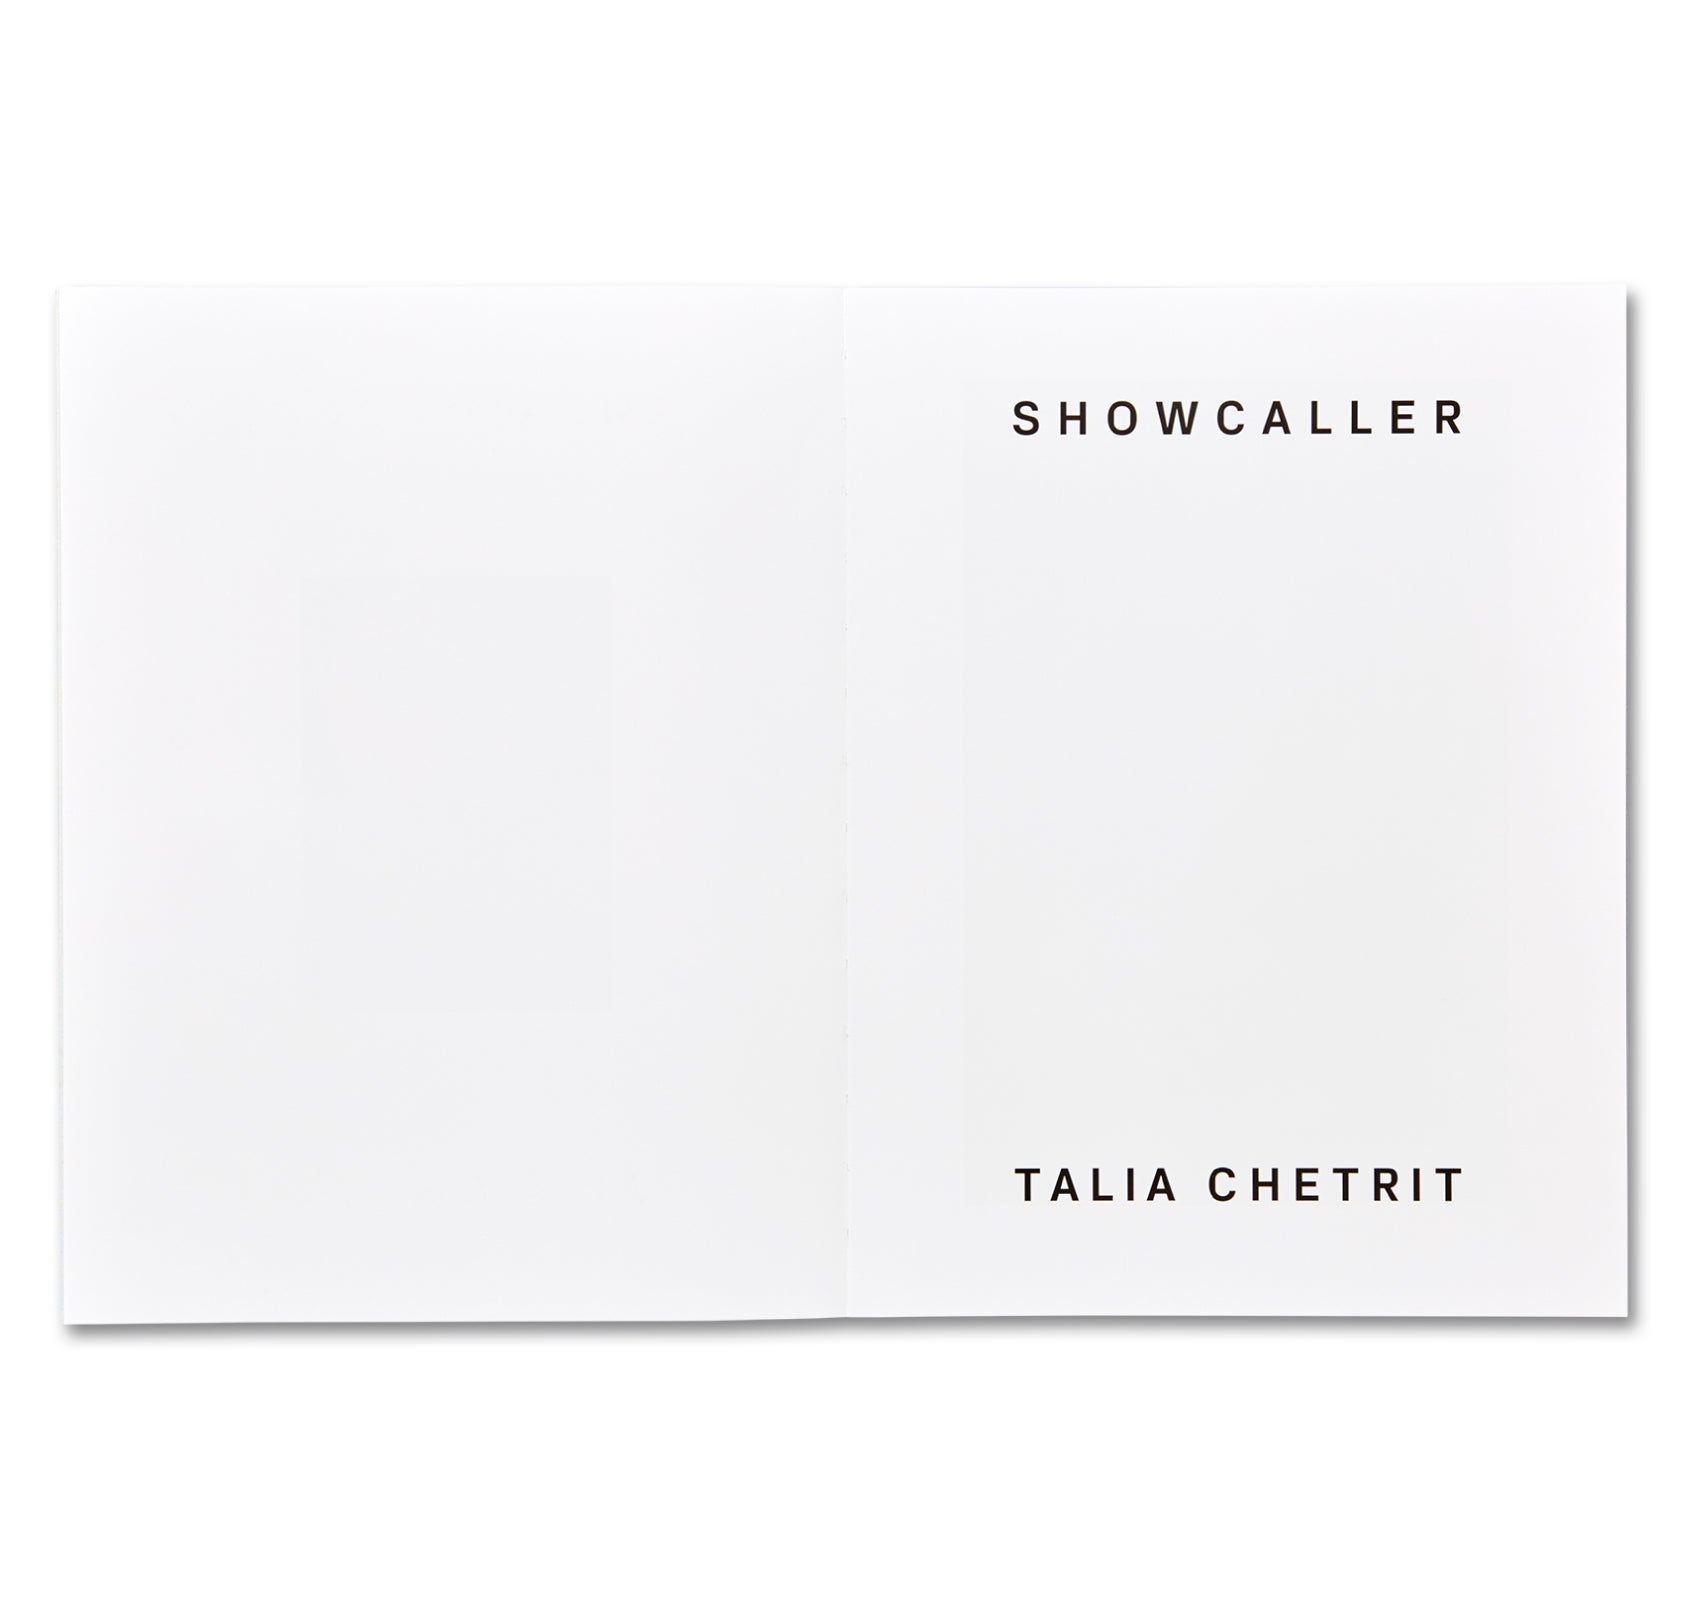 SHOWCALLER by Talia Chetrit